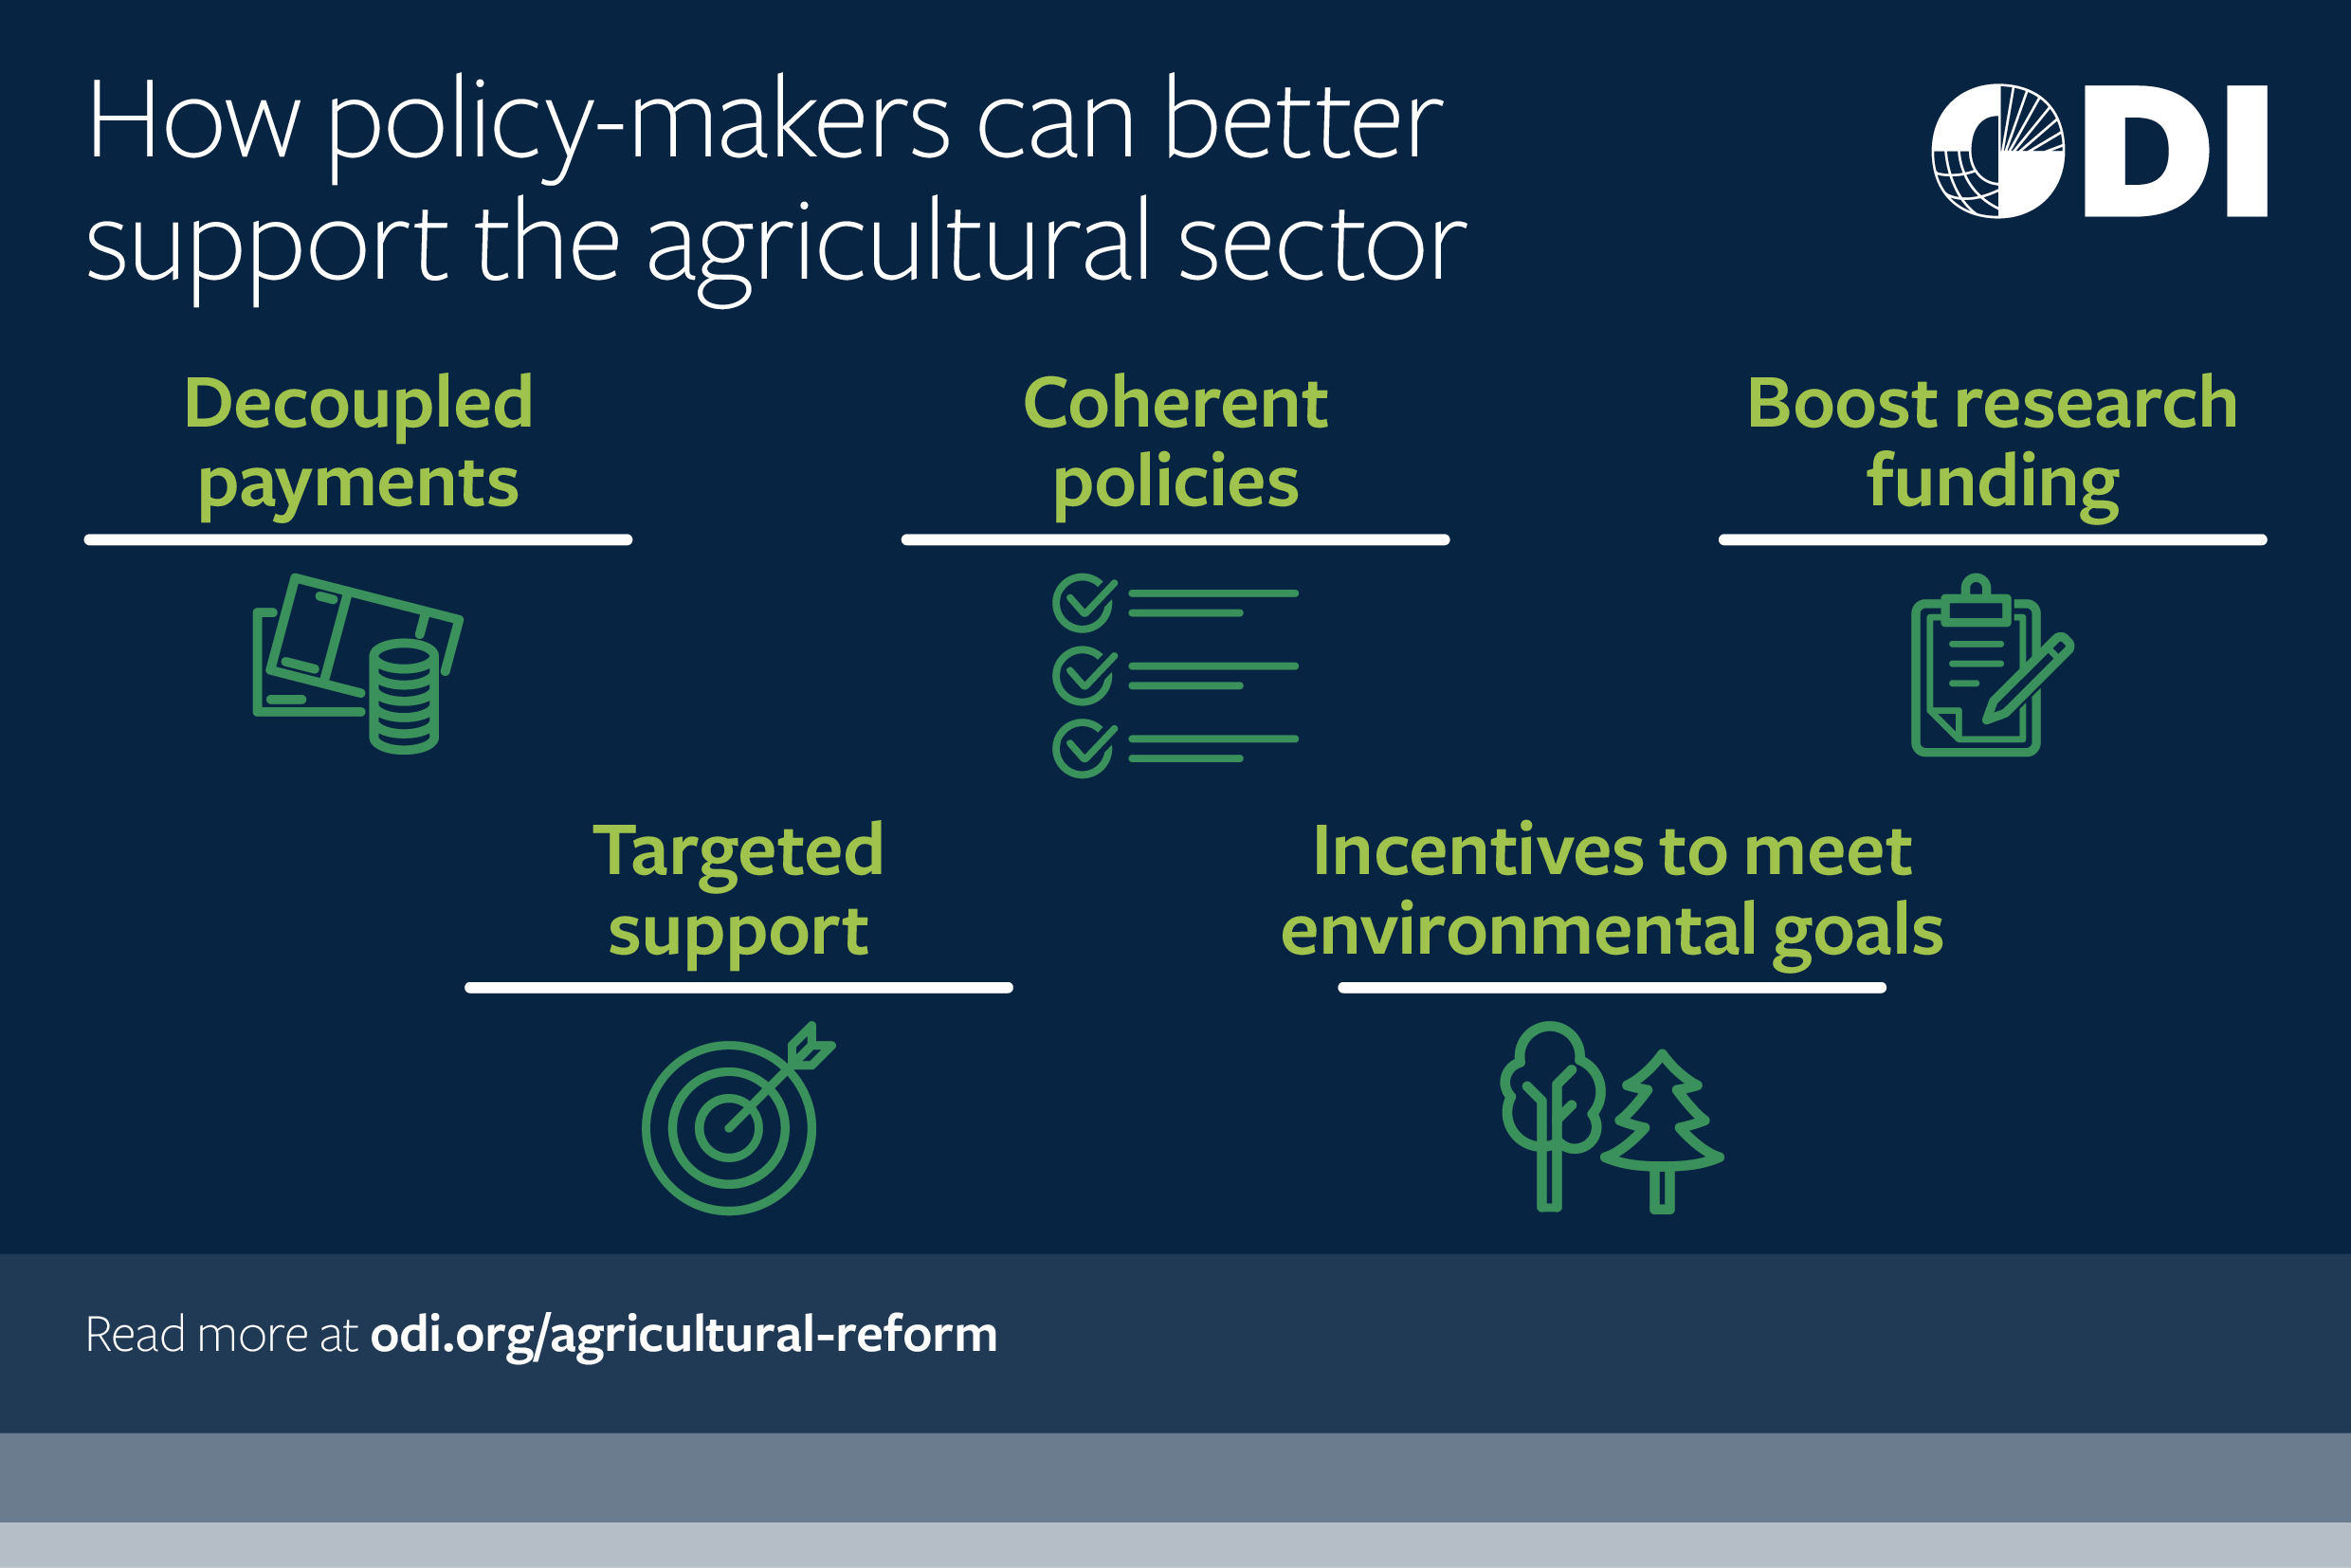 How policy-makers can better support the agricultural sector.